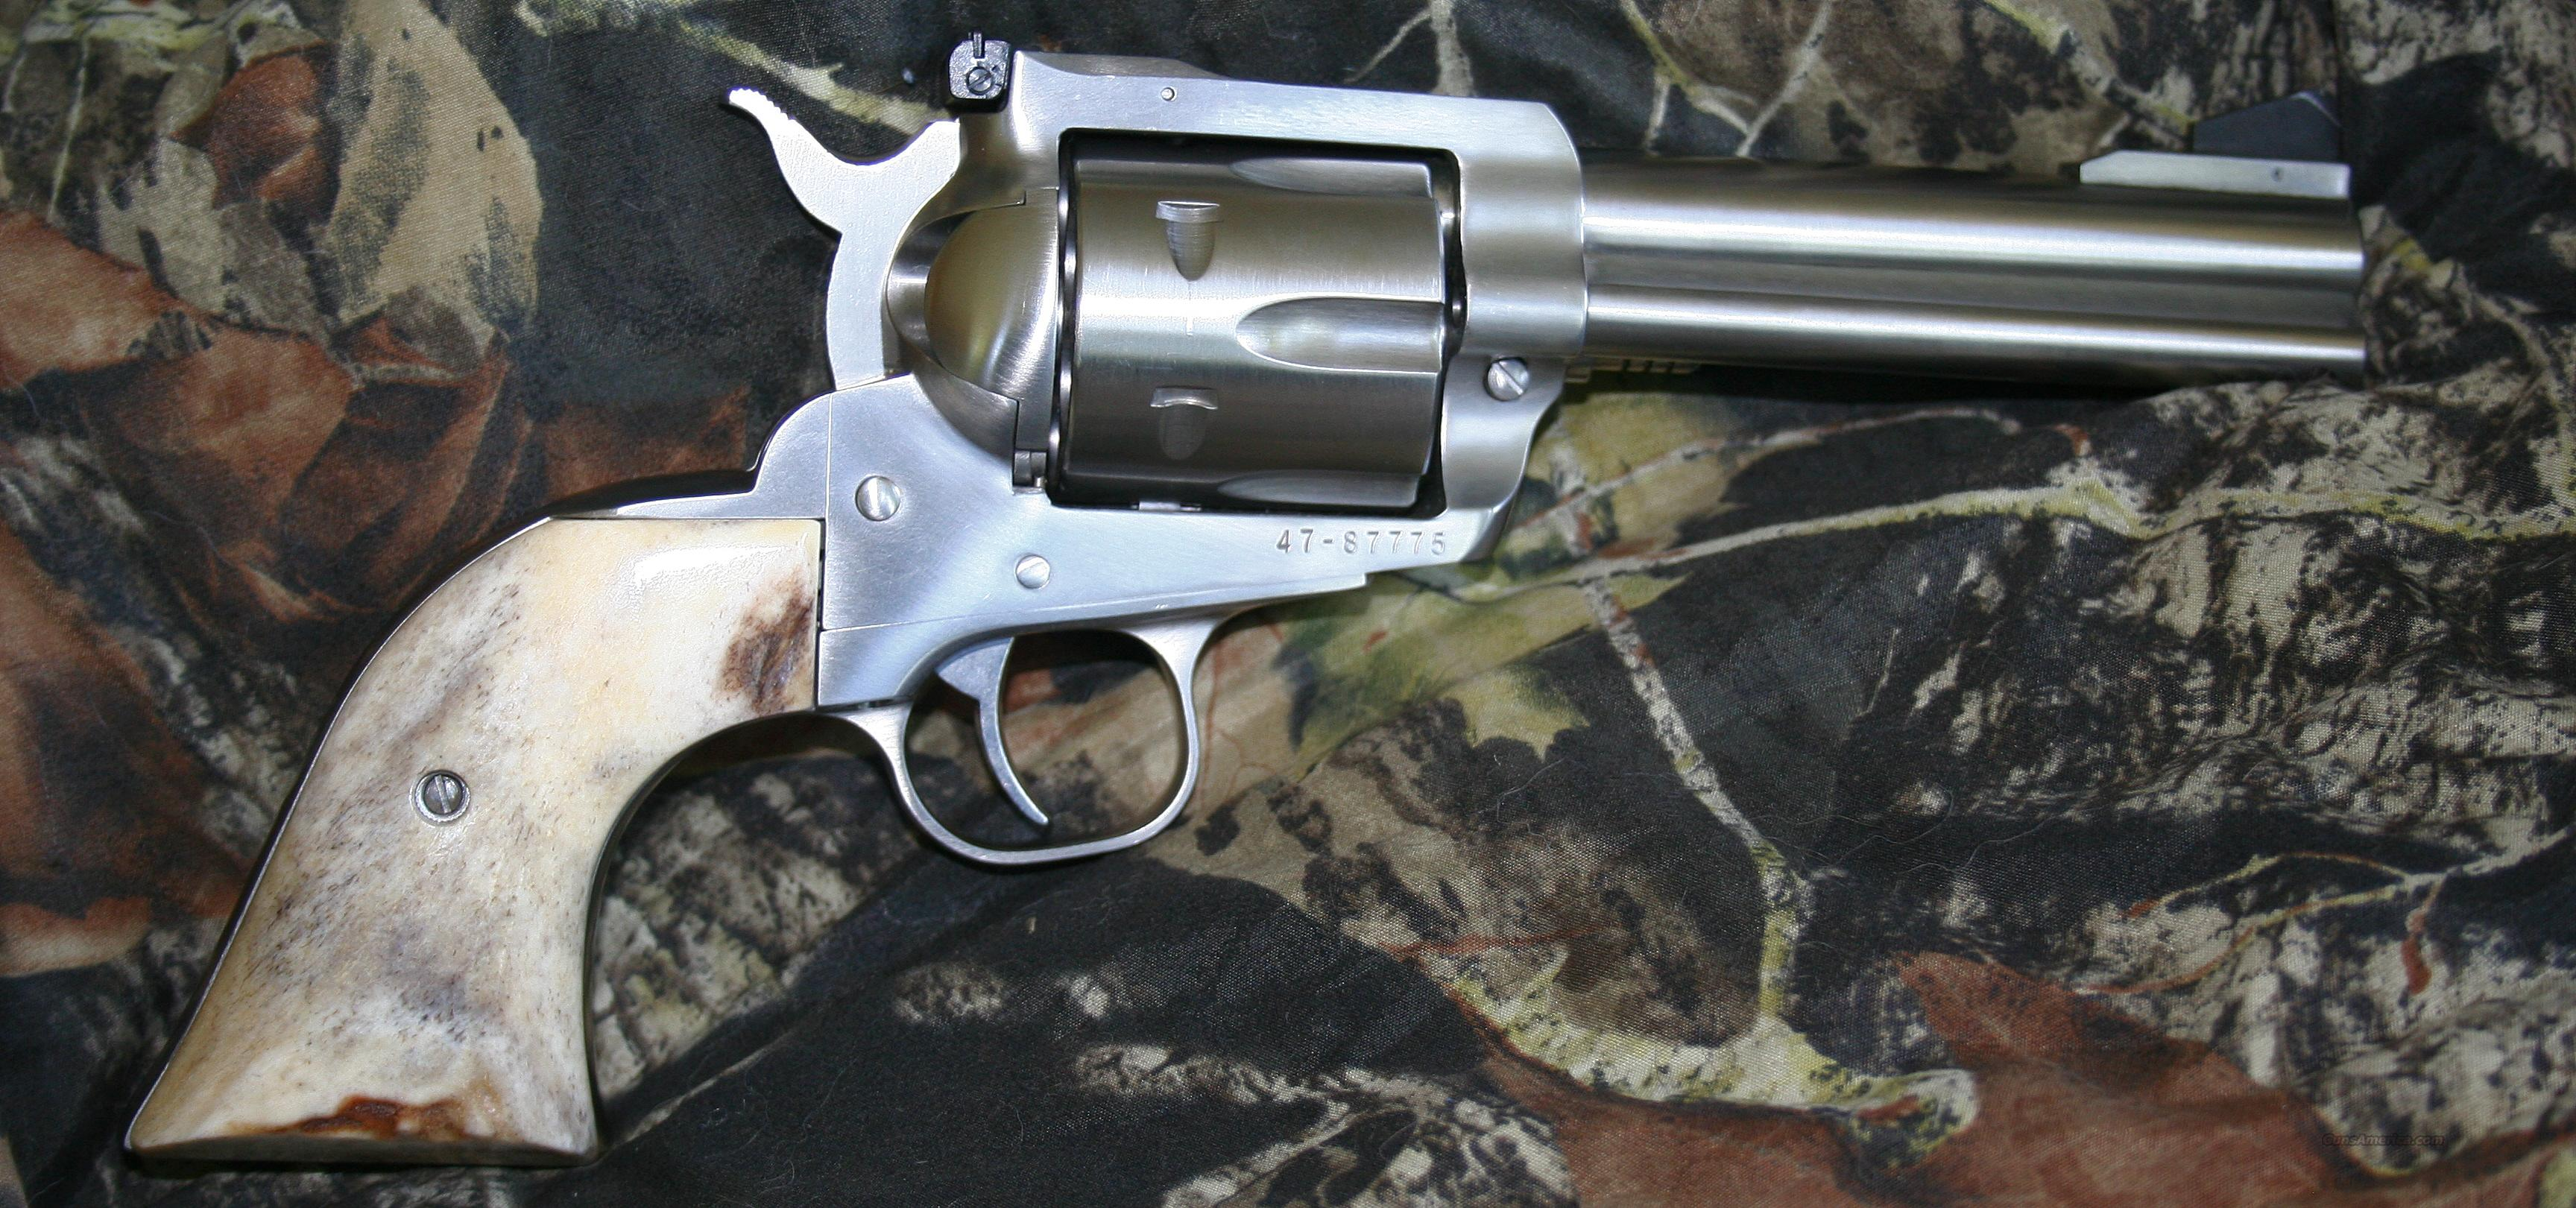 RUGER BLACK HAWK, STAINLESS, 4 5/8 BBL  & STAG GRIPS  ***FREE POSTAGE***  Guns > Pistols > Ruger Single Action Revolvers > Blackhawk Type